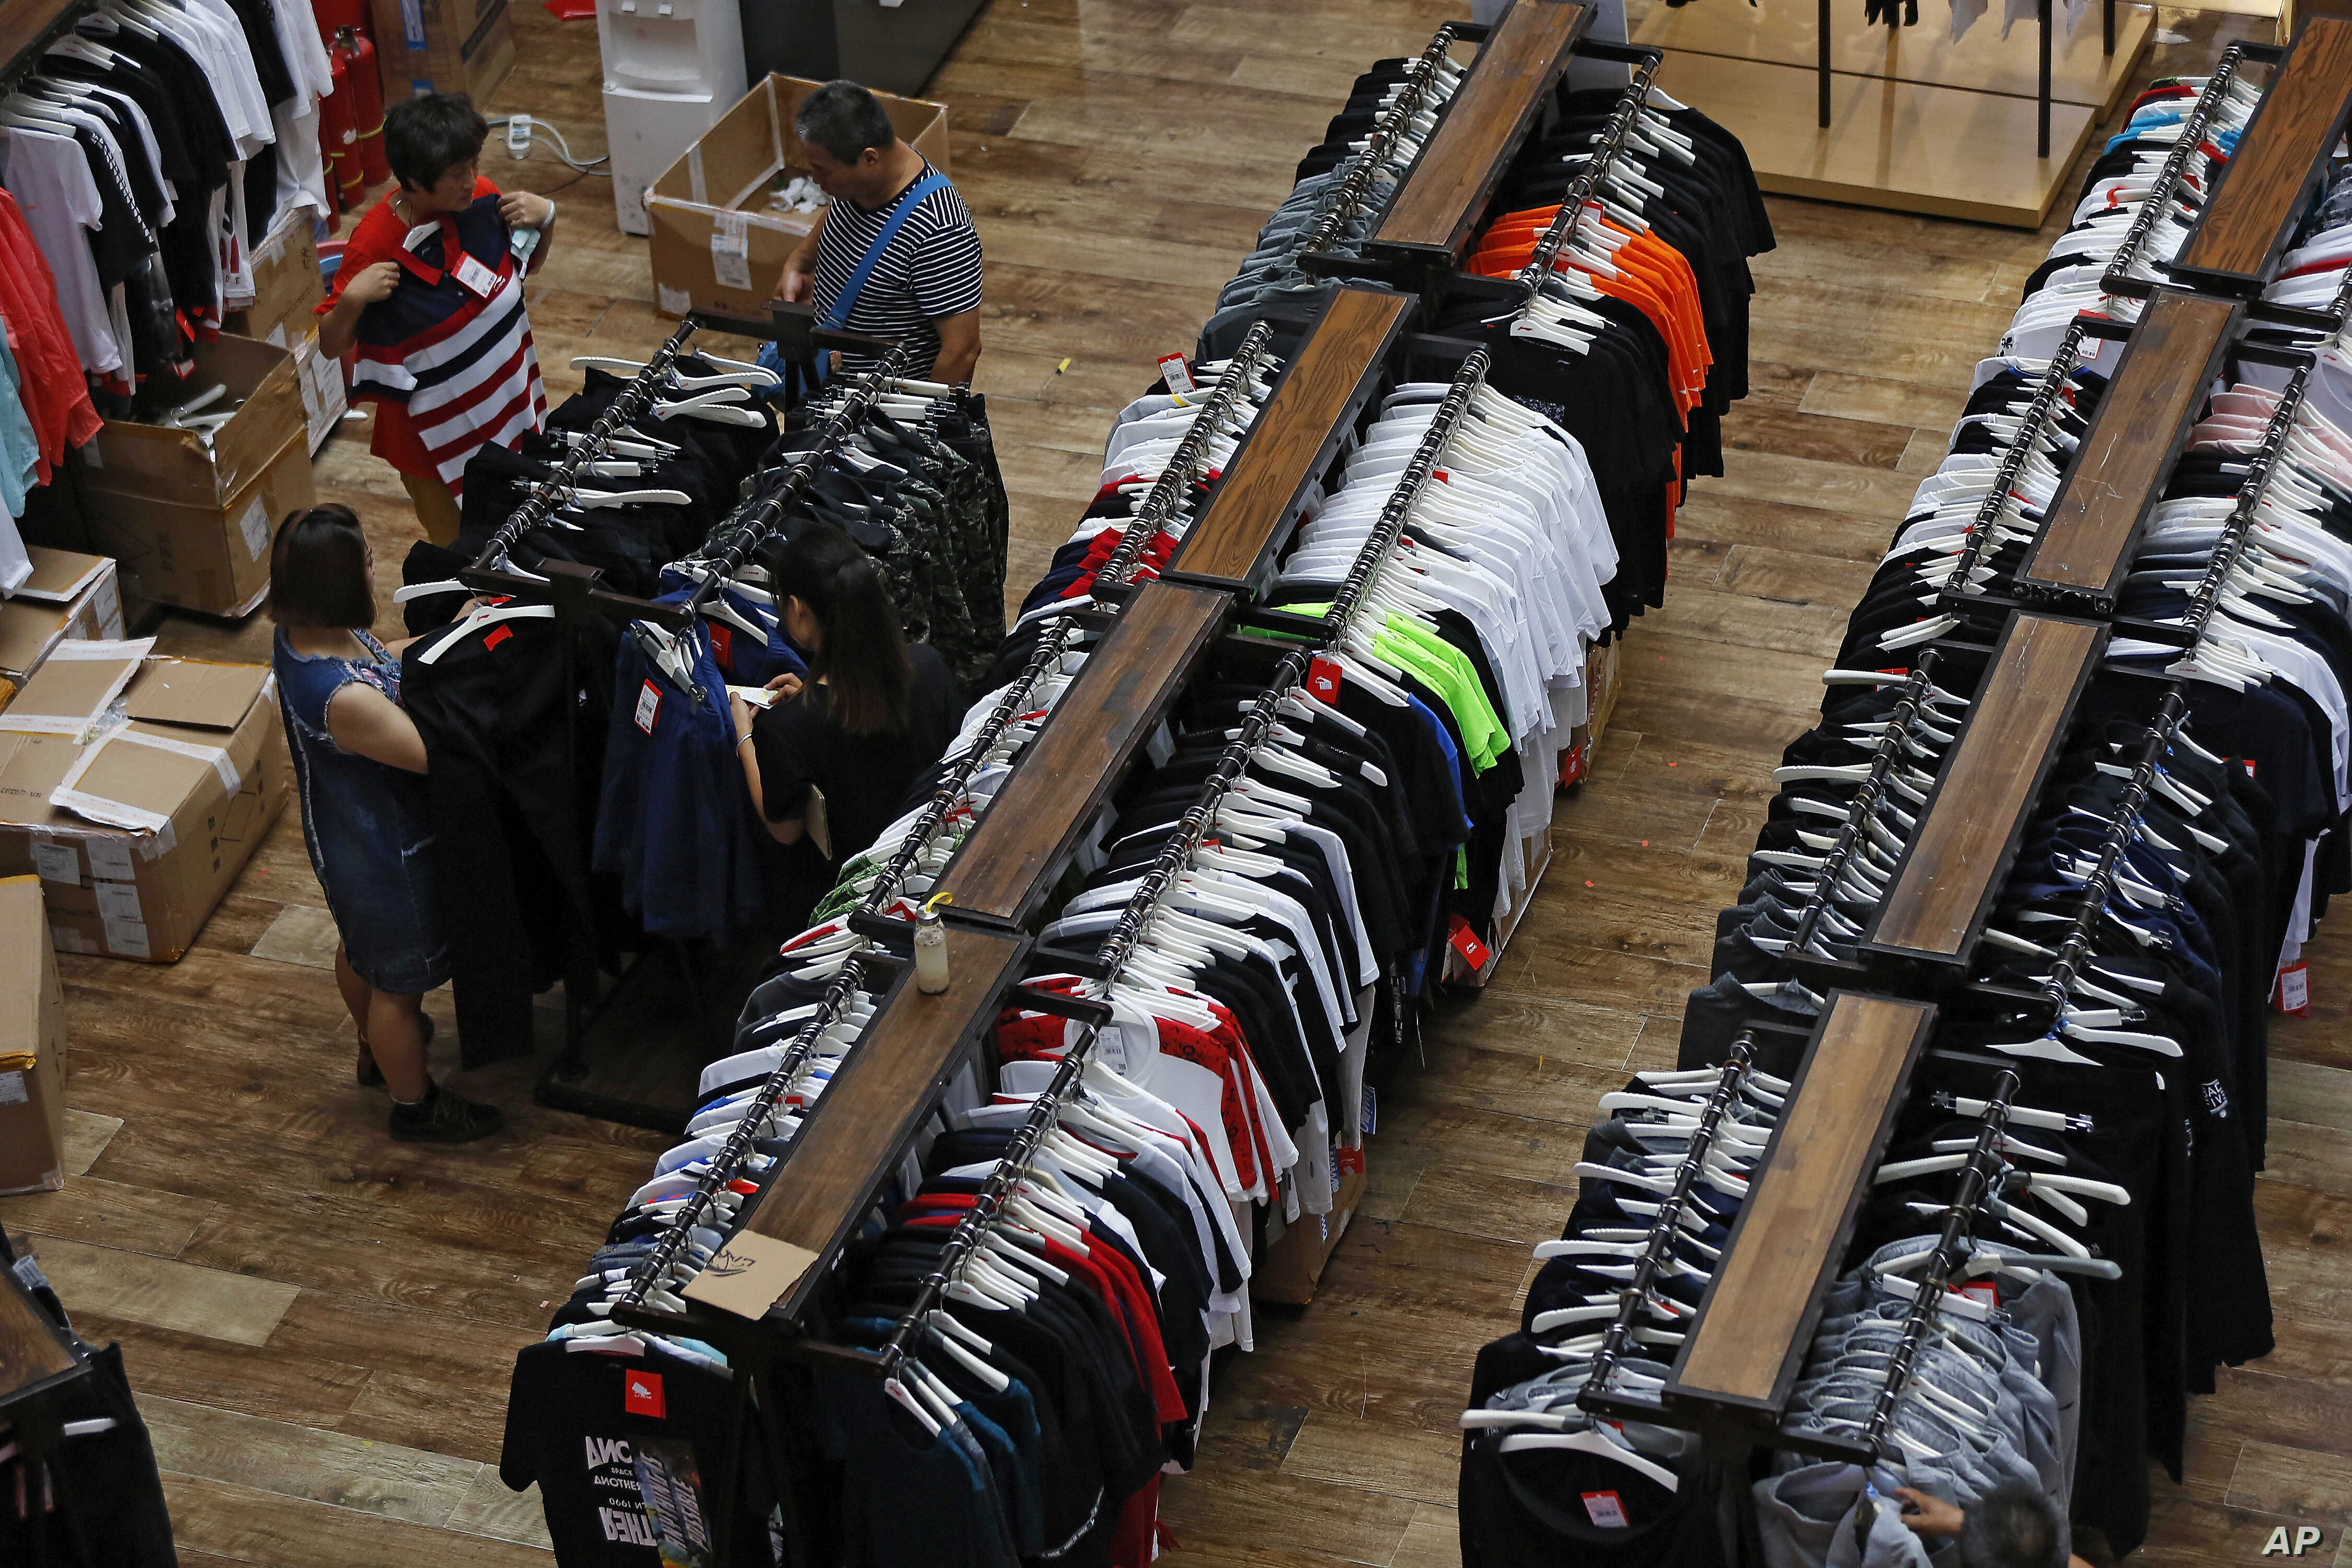 People try garments at a retail and wholesale clothing mall in Beijing, July 16, 2018. China's economic growth slowed in the quarter ending in June, adding to challenges for Beijing amid a mounting tariff battle with Washington.